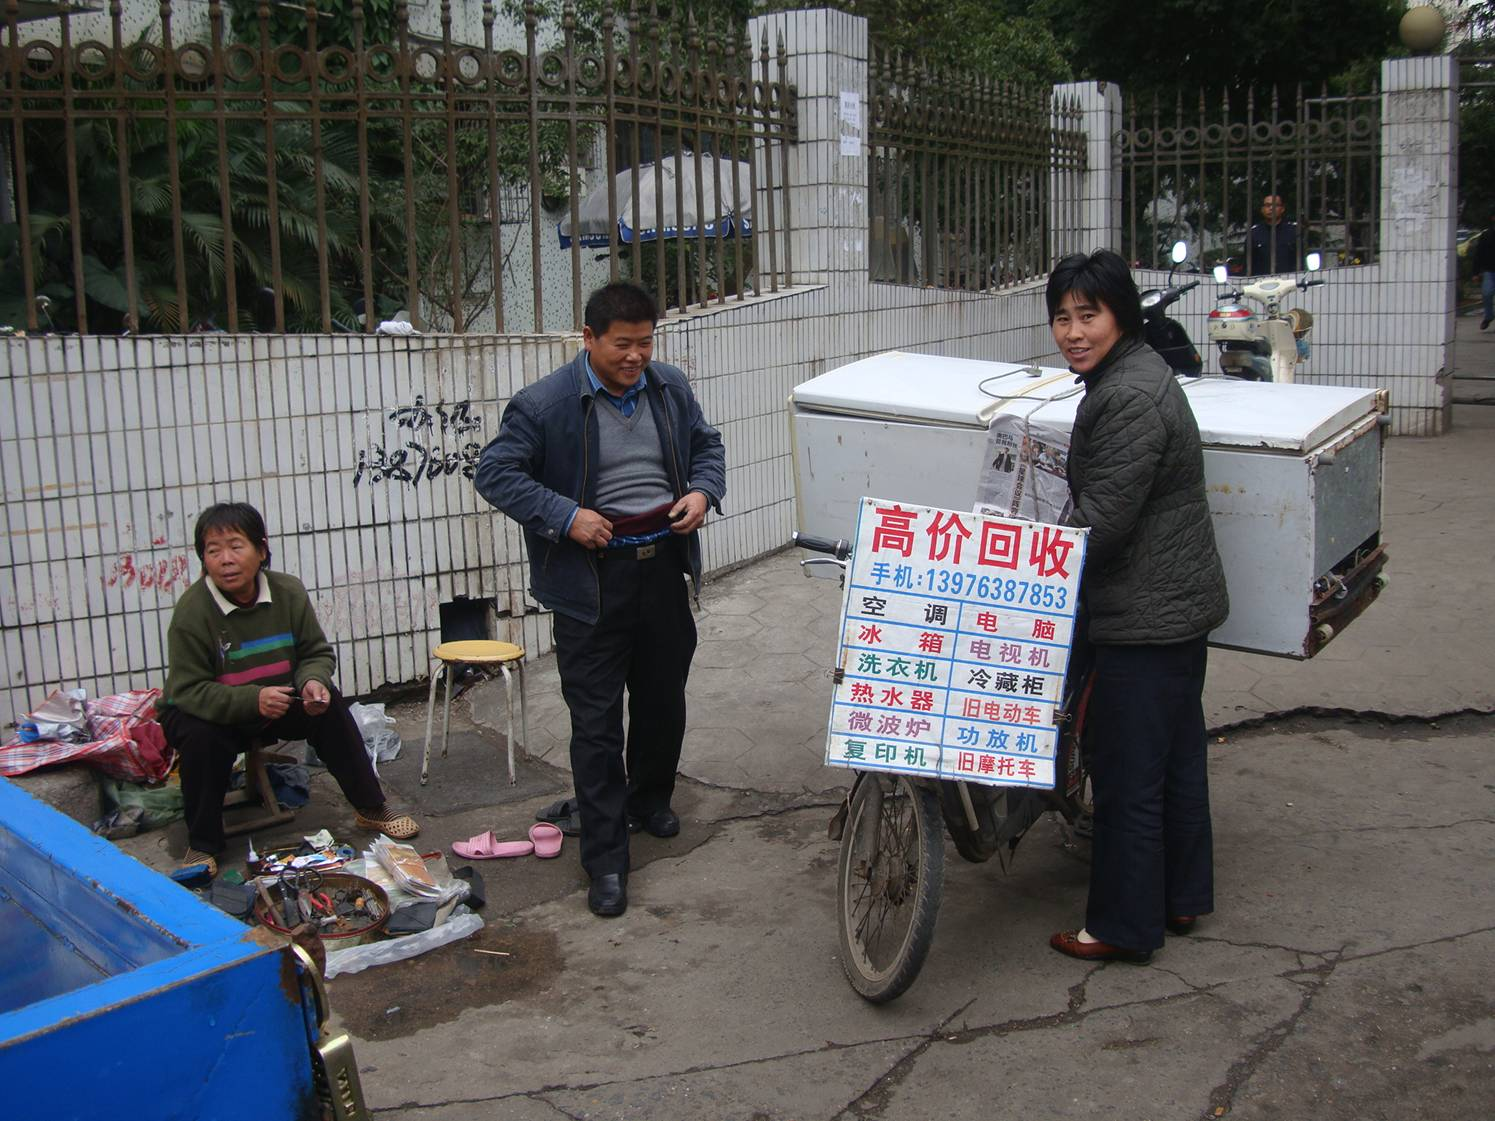 Picture:  Moving the refrigerator on the bicycle.  Haikou, China.